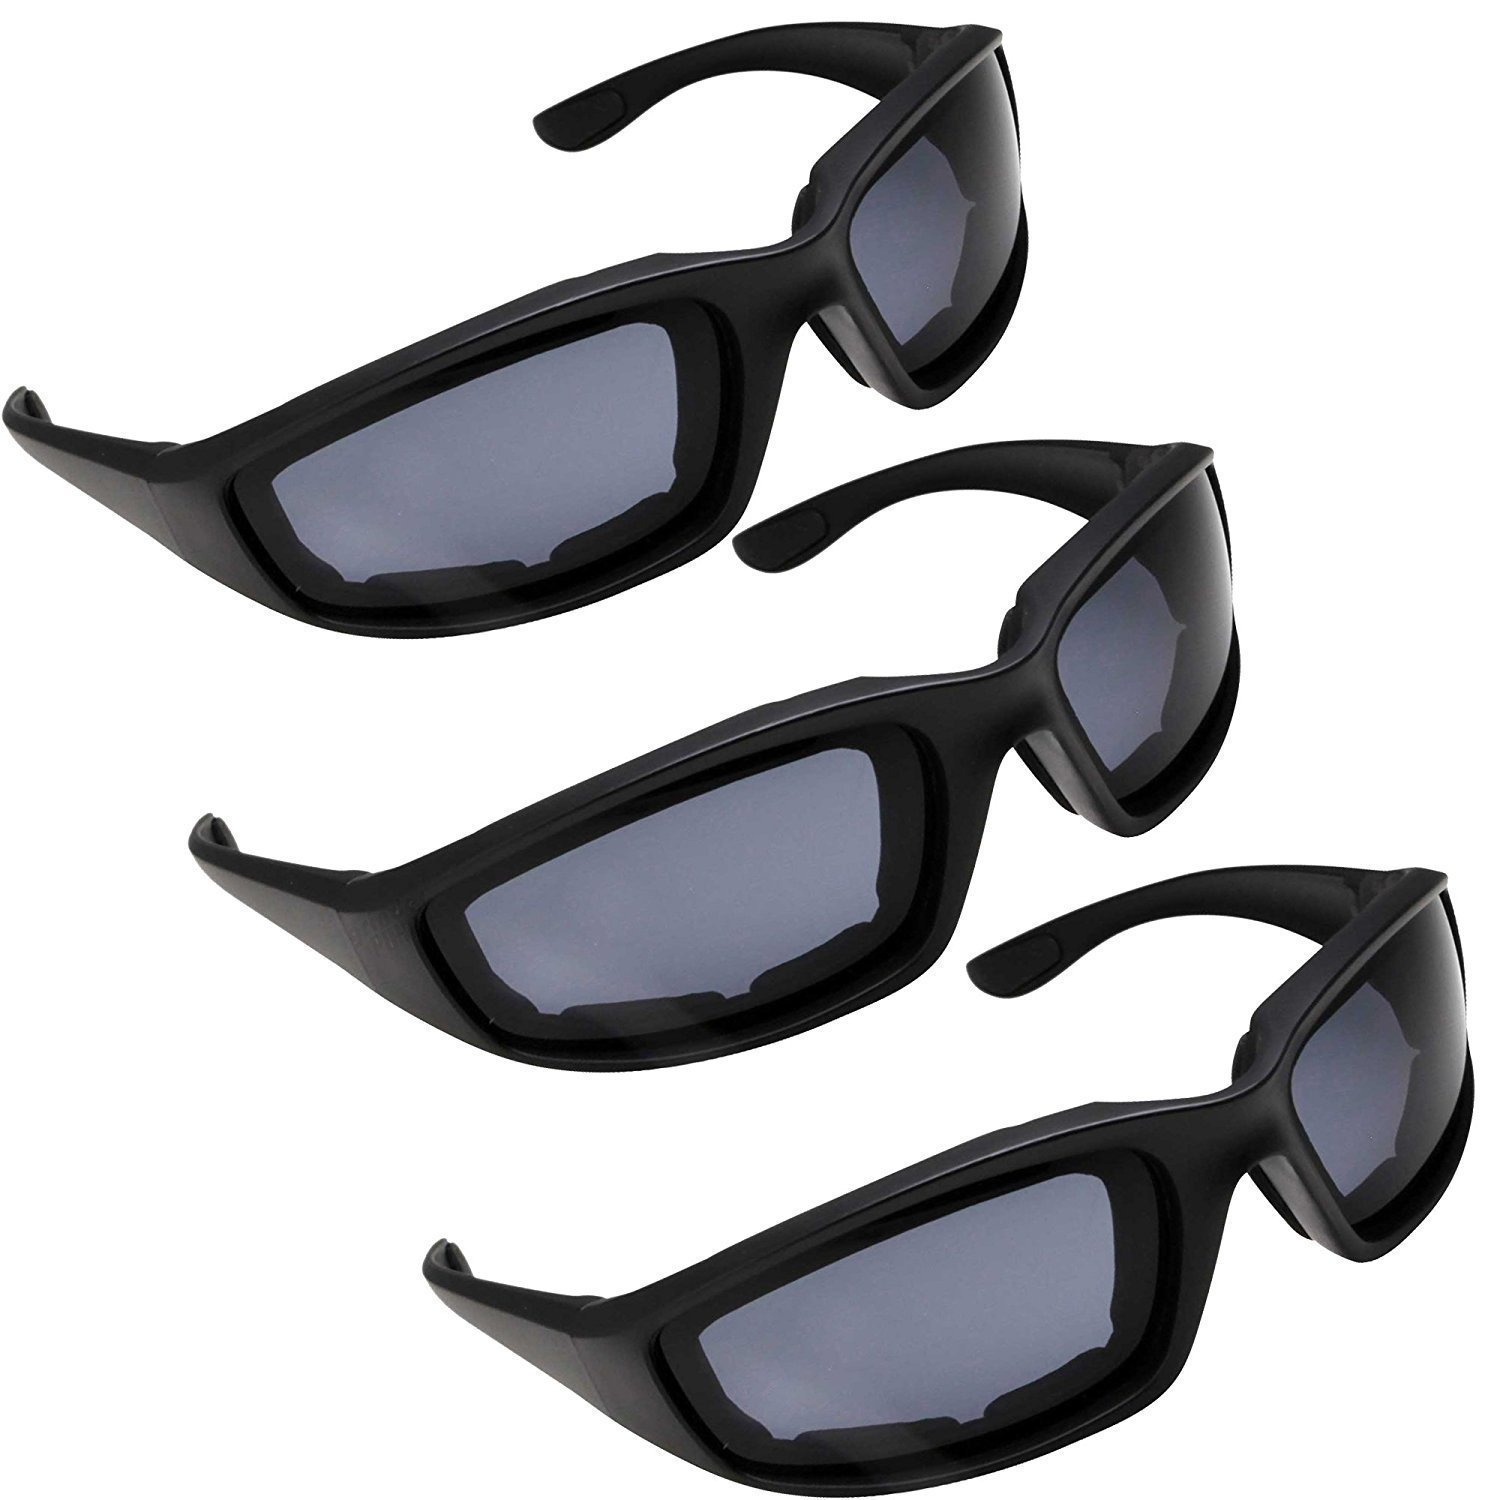 ZZM 3 Pair Motorcycle Riding Glasses Smoke 4336330439